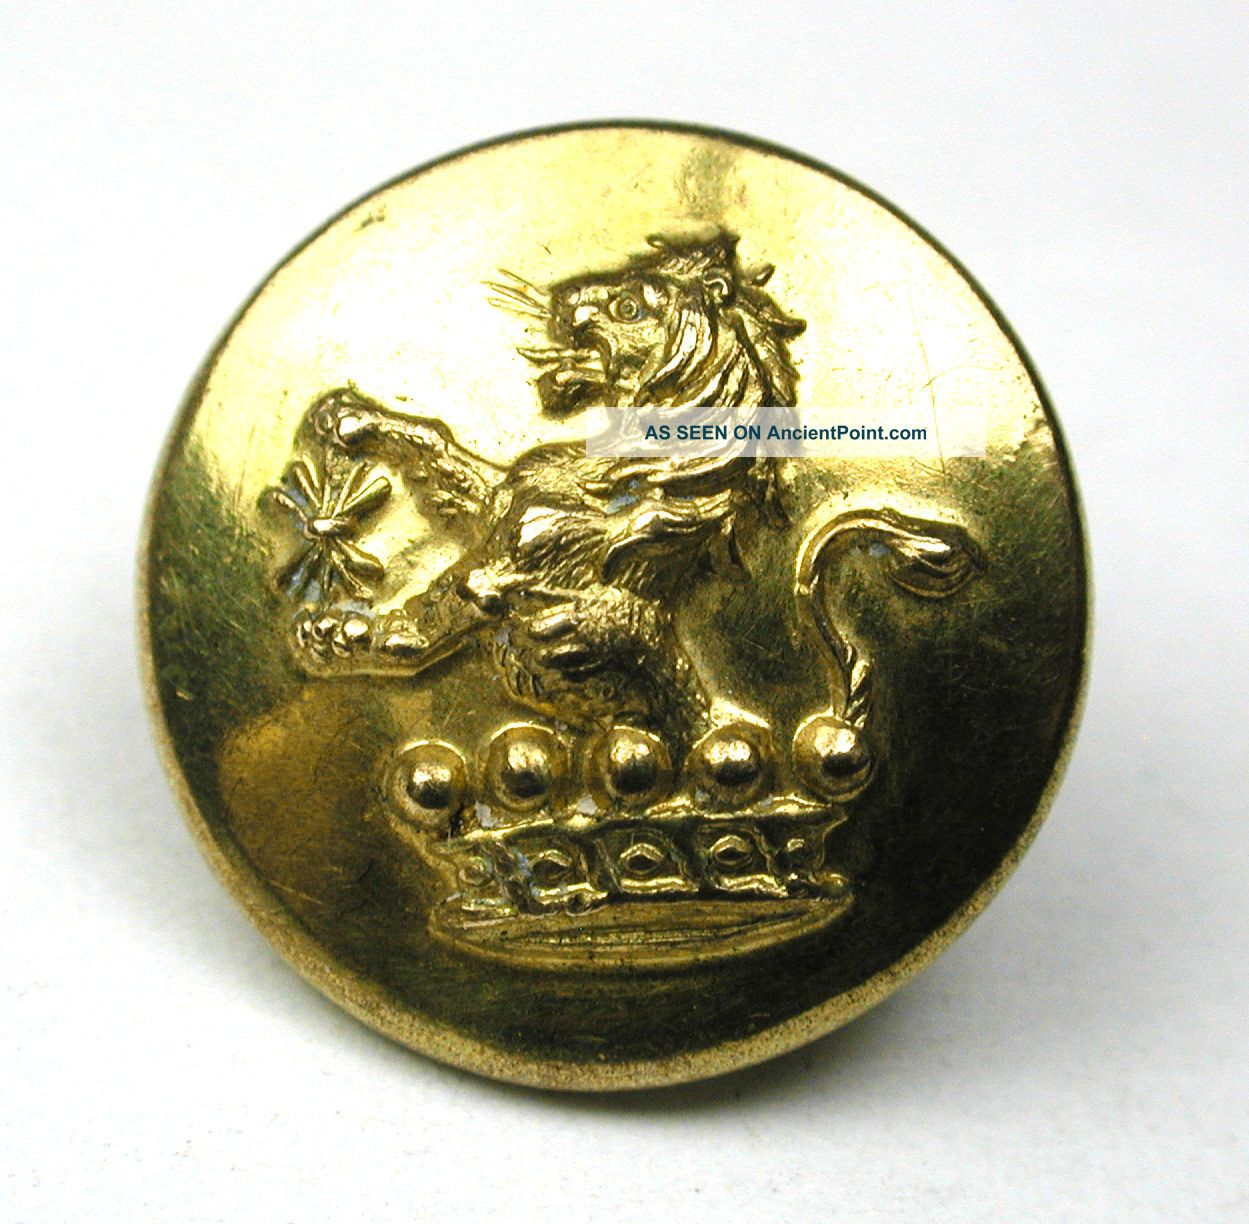 Antique Brass Livery Button - Lion In Crown Image - Firmin - 5/8